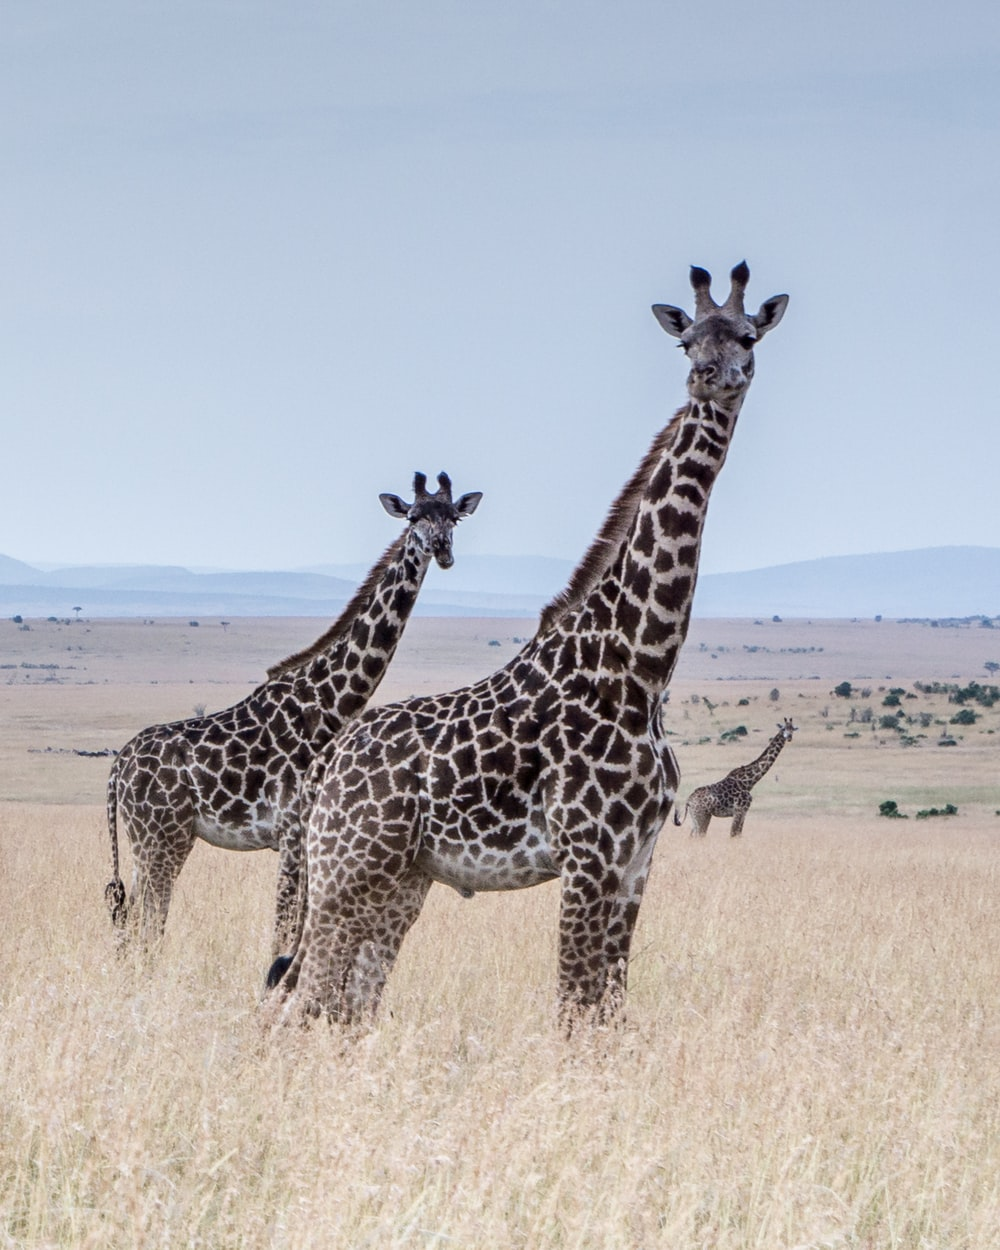 giraffes at the middle of the field